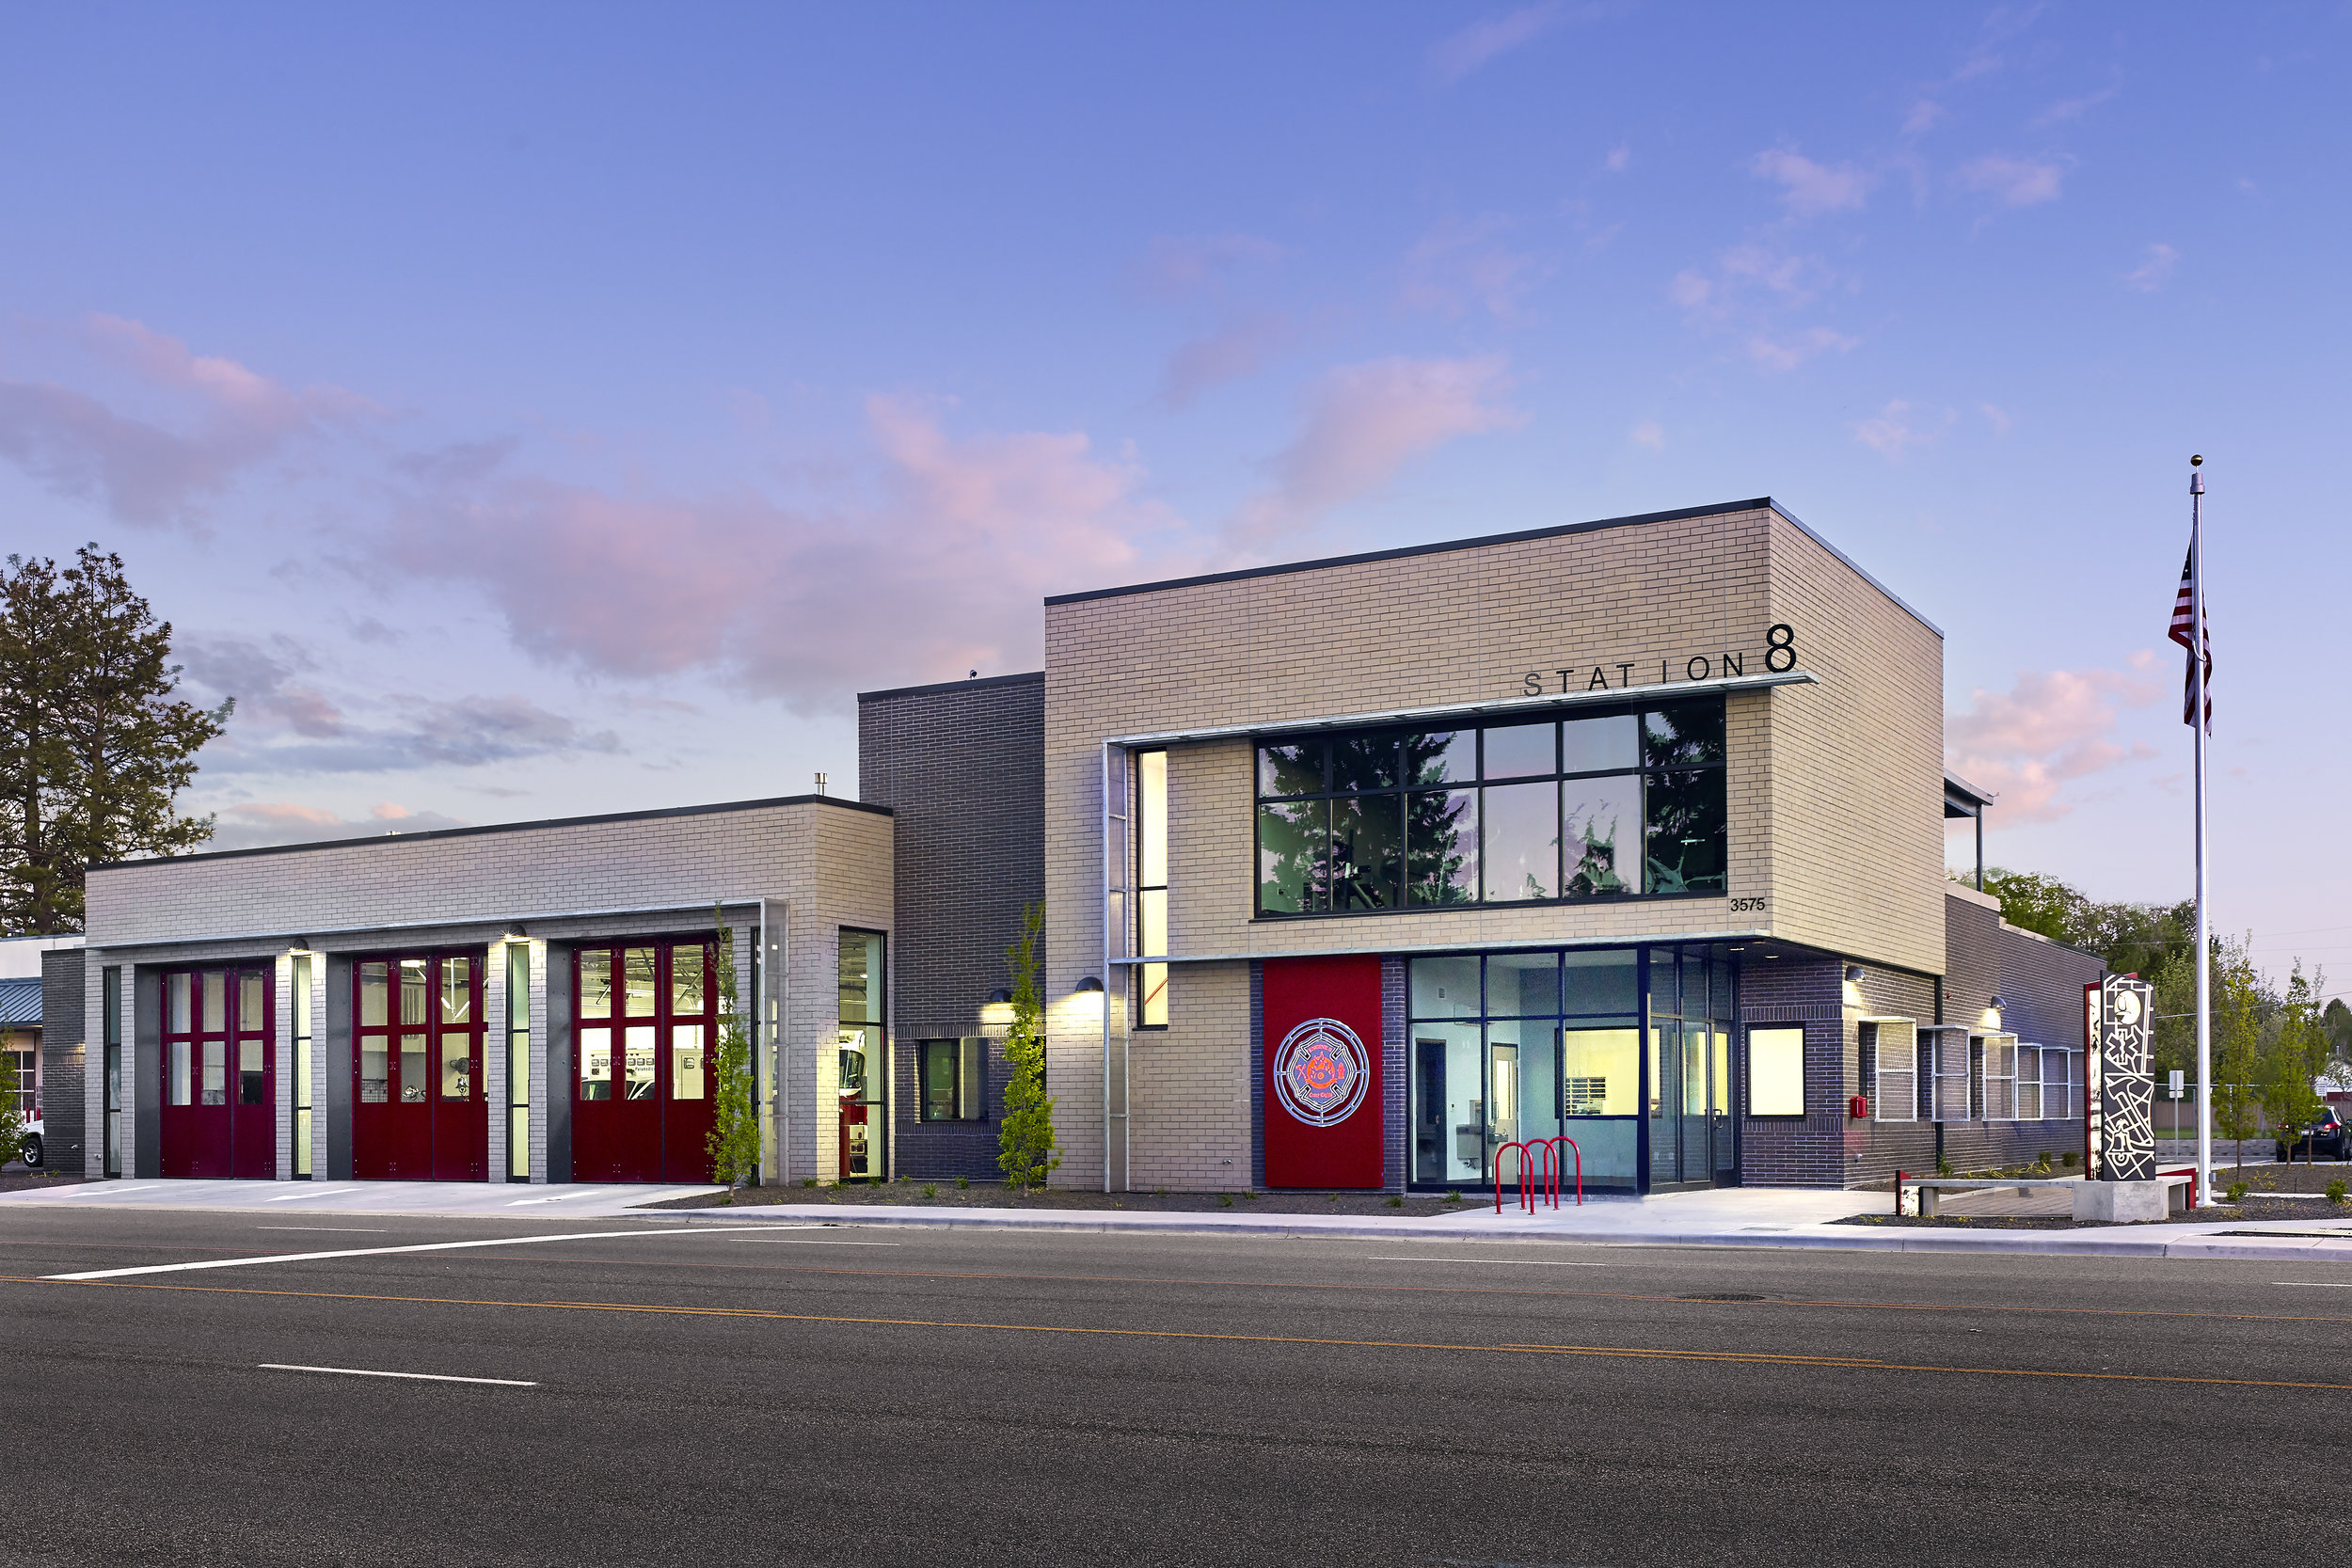 City of Boise Fire Station 8 designed by Fire Station Design Expert TCA Architecture